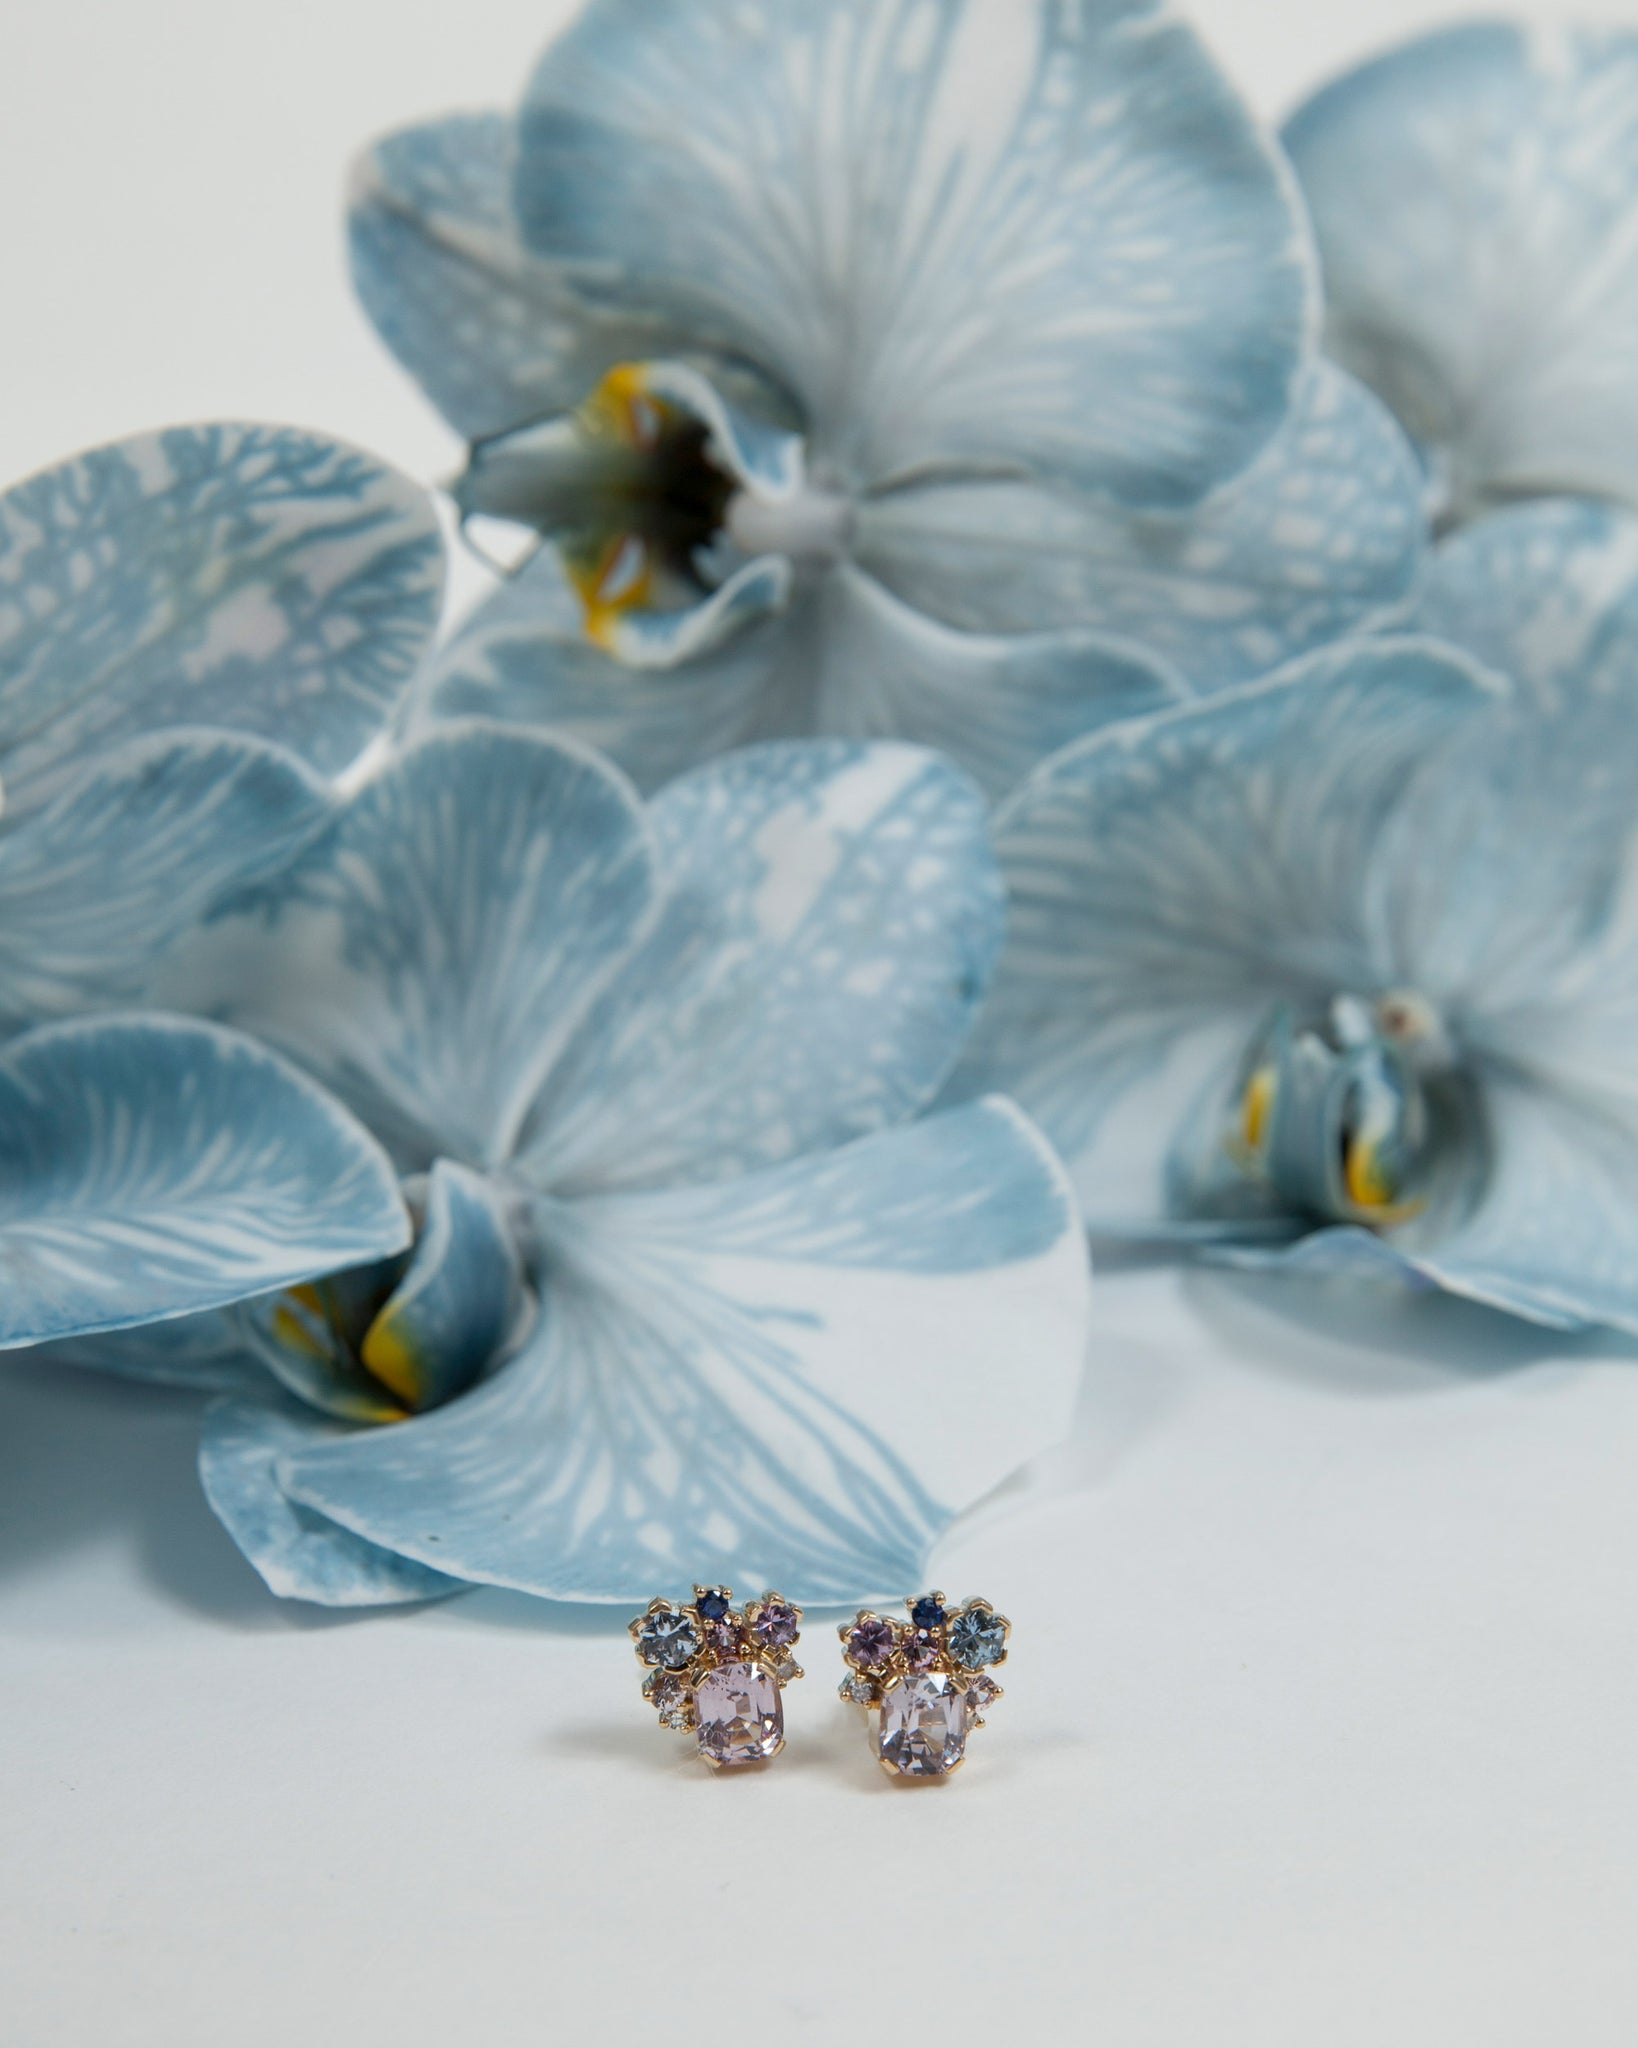 Cushion Cut Burmese Spinel Studs styled